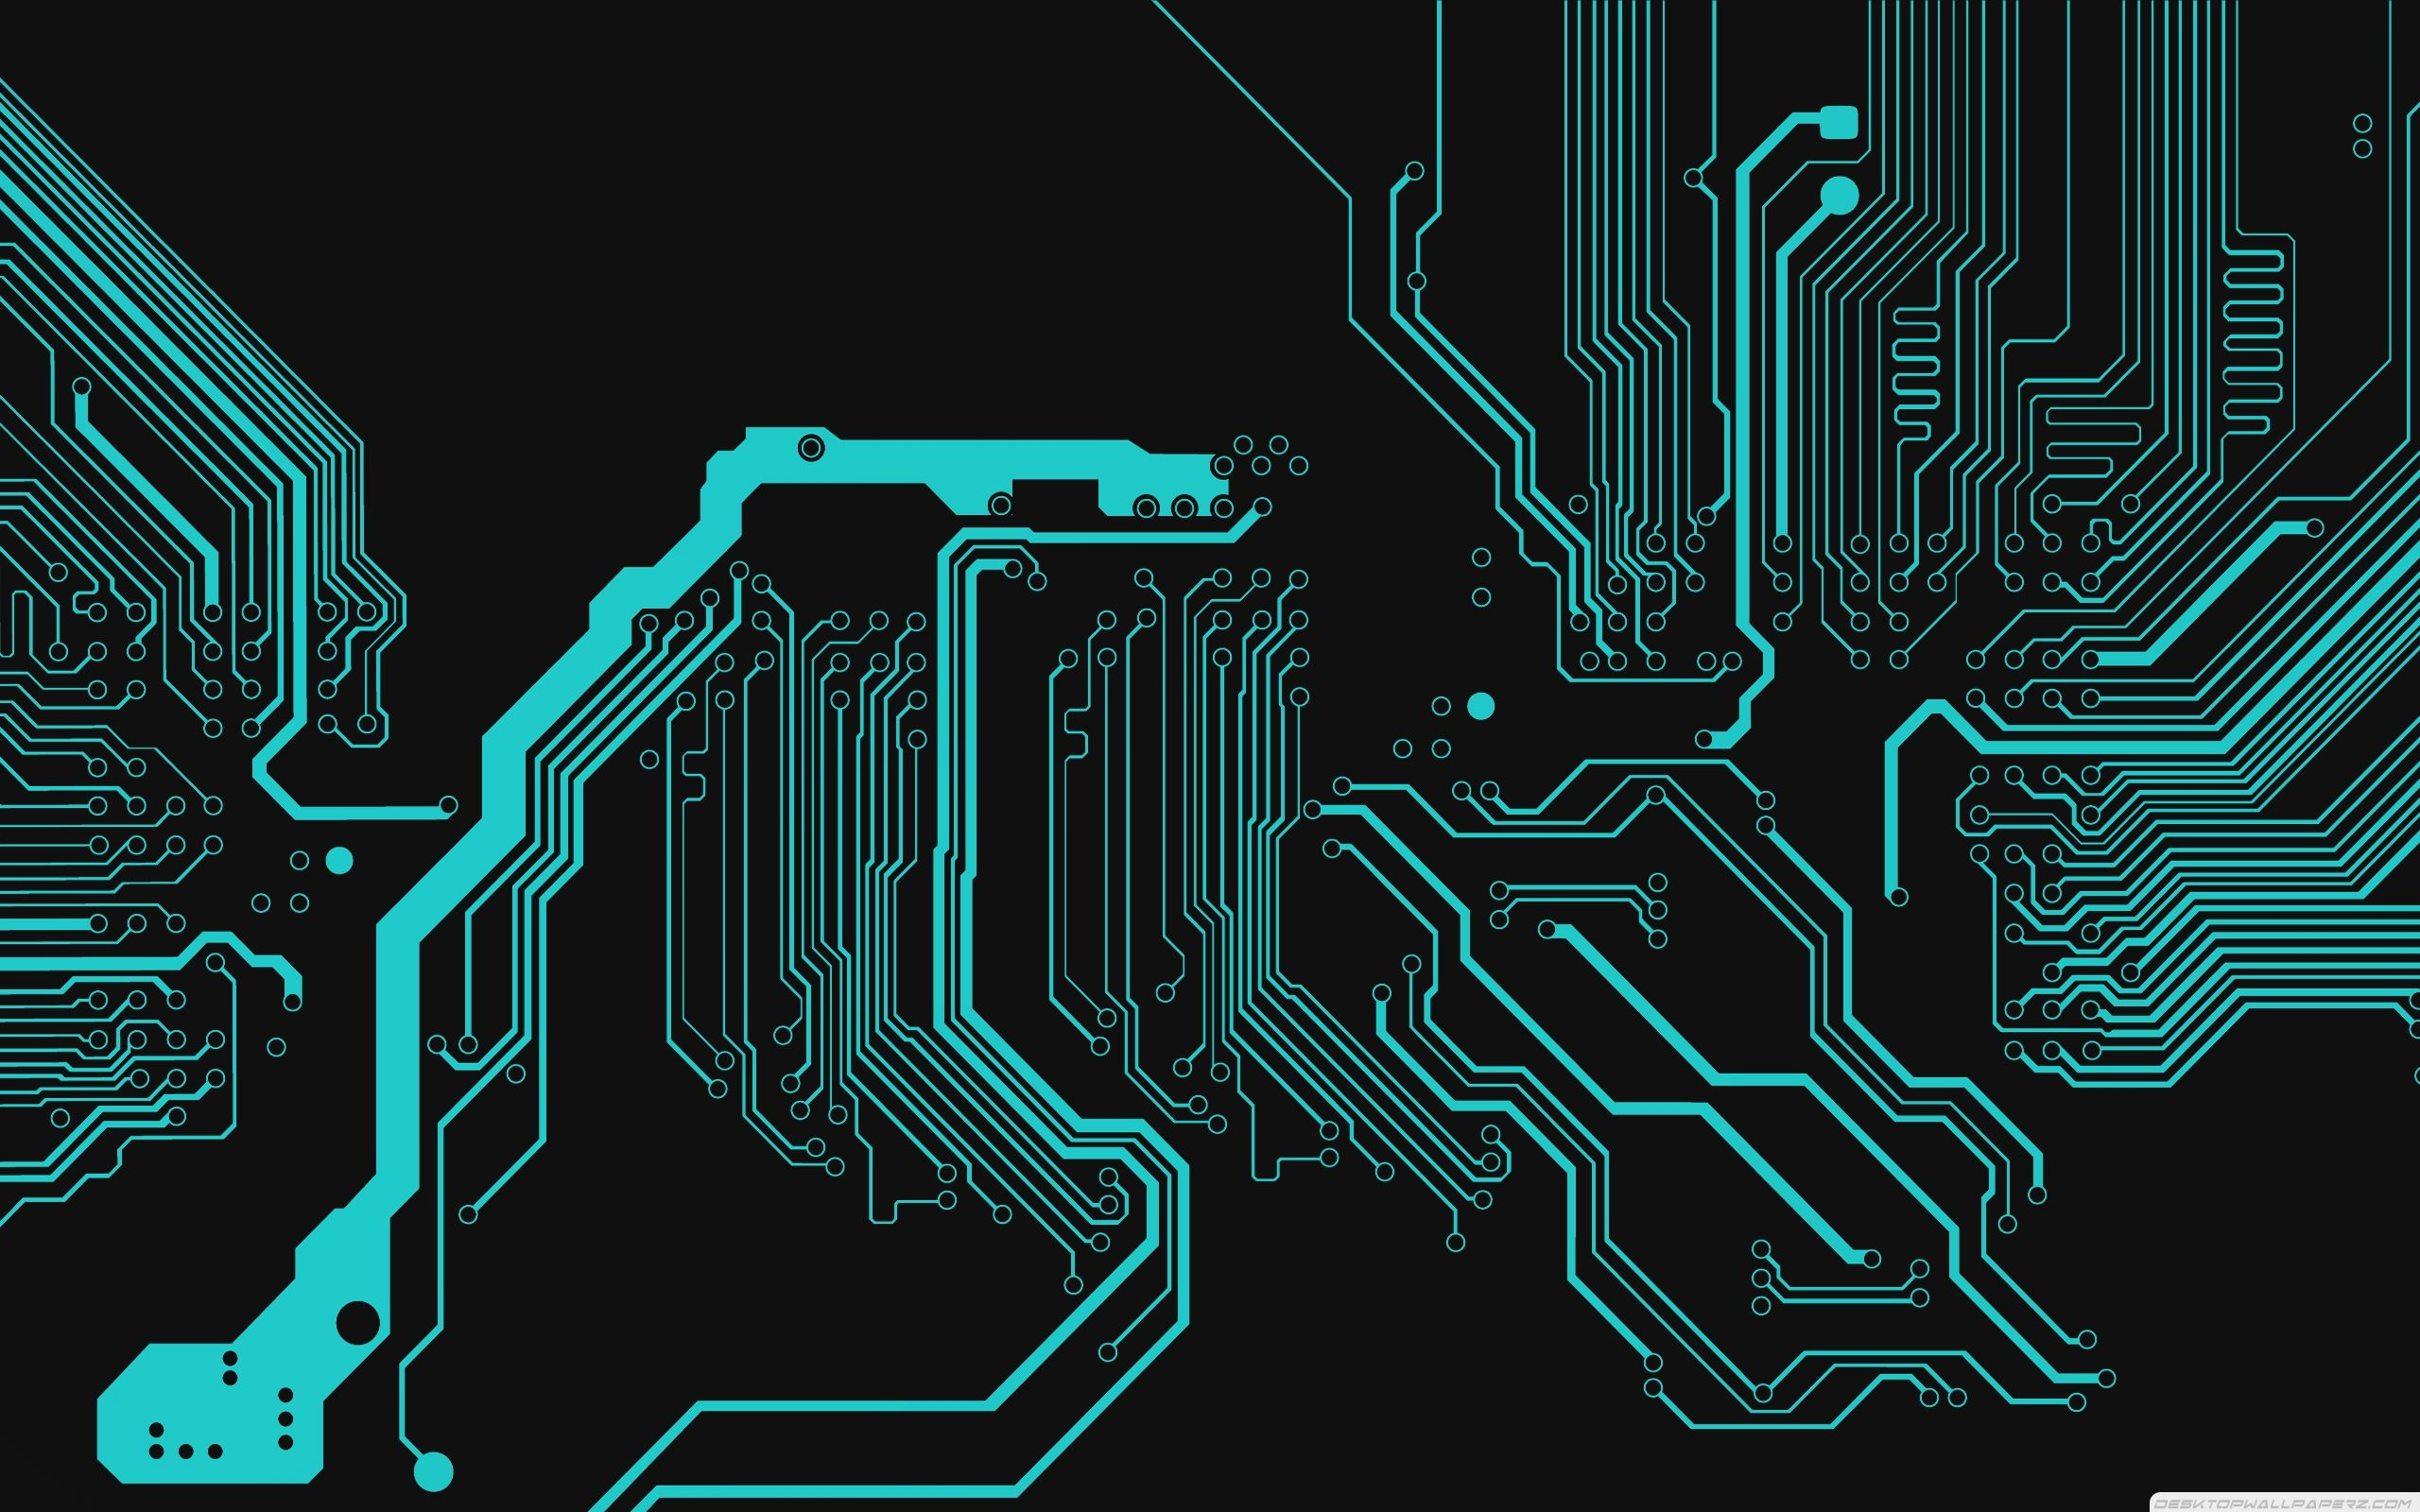 AbstractTronCircuits2560x1600.jpg (2560×1600